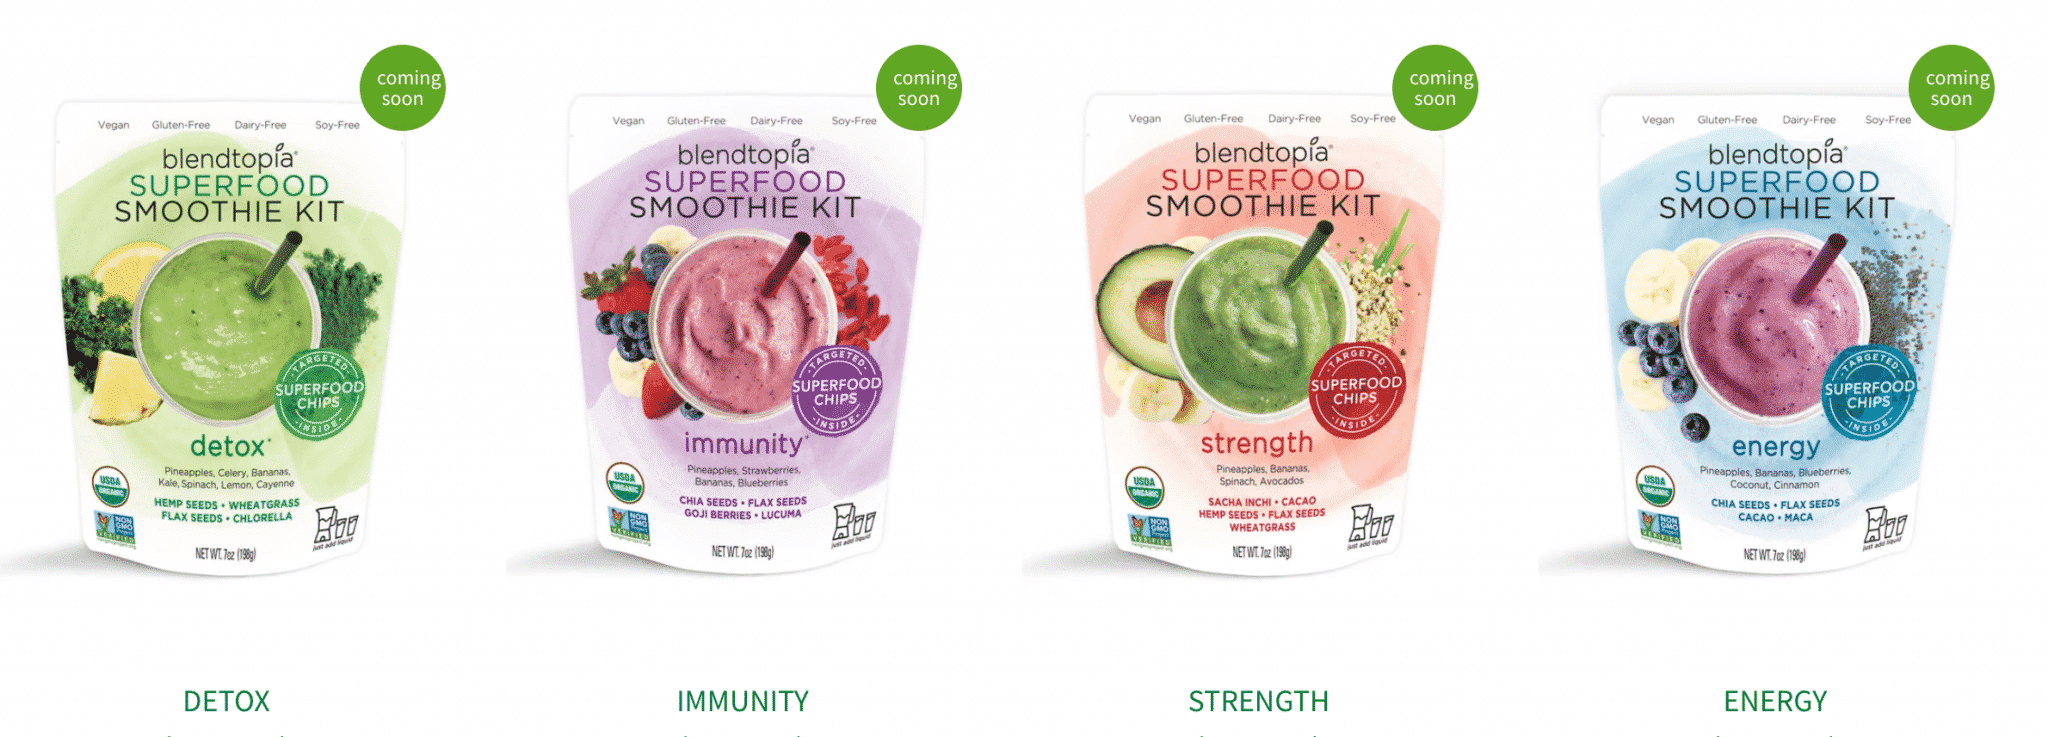 [CREDIT: Blentopia] Blendtopia has recalled certain frozen smoothie kit due to Listeria risk.